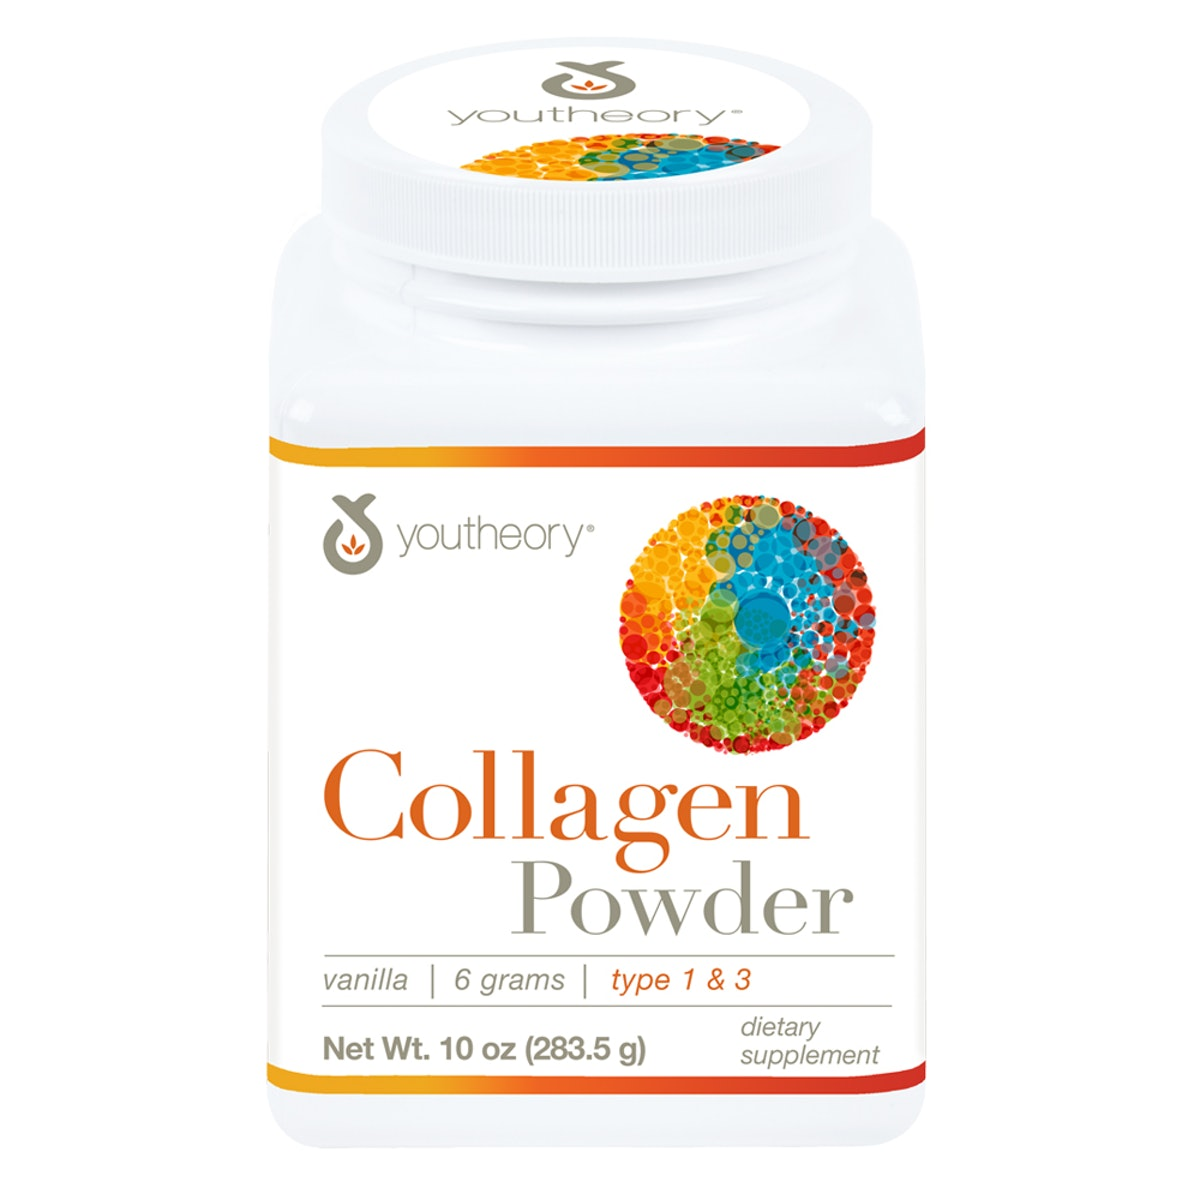 Youtheory Collagen Powder with Biotin and Vitamin C, 10 oz